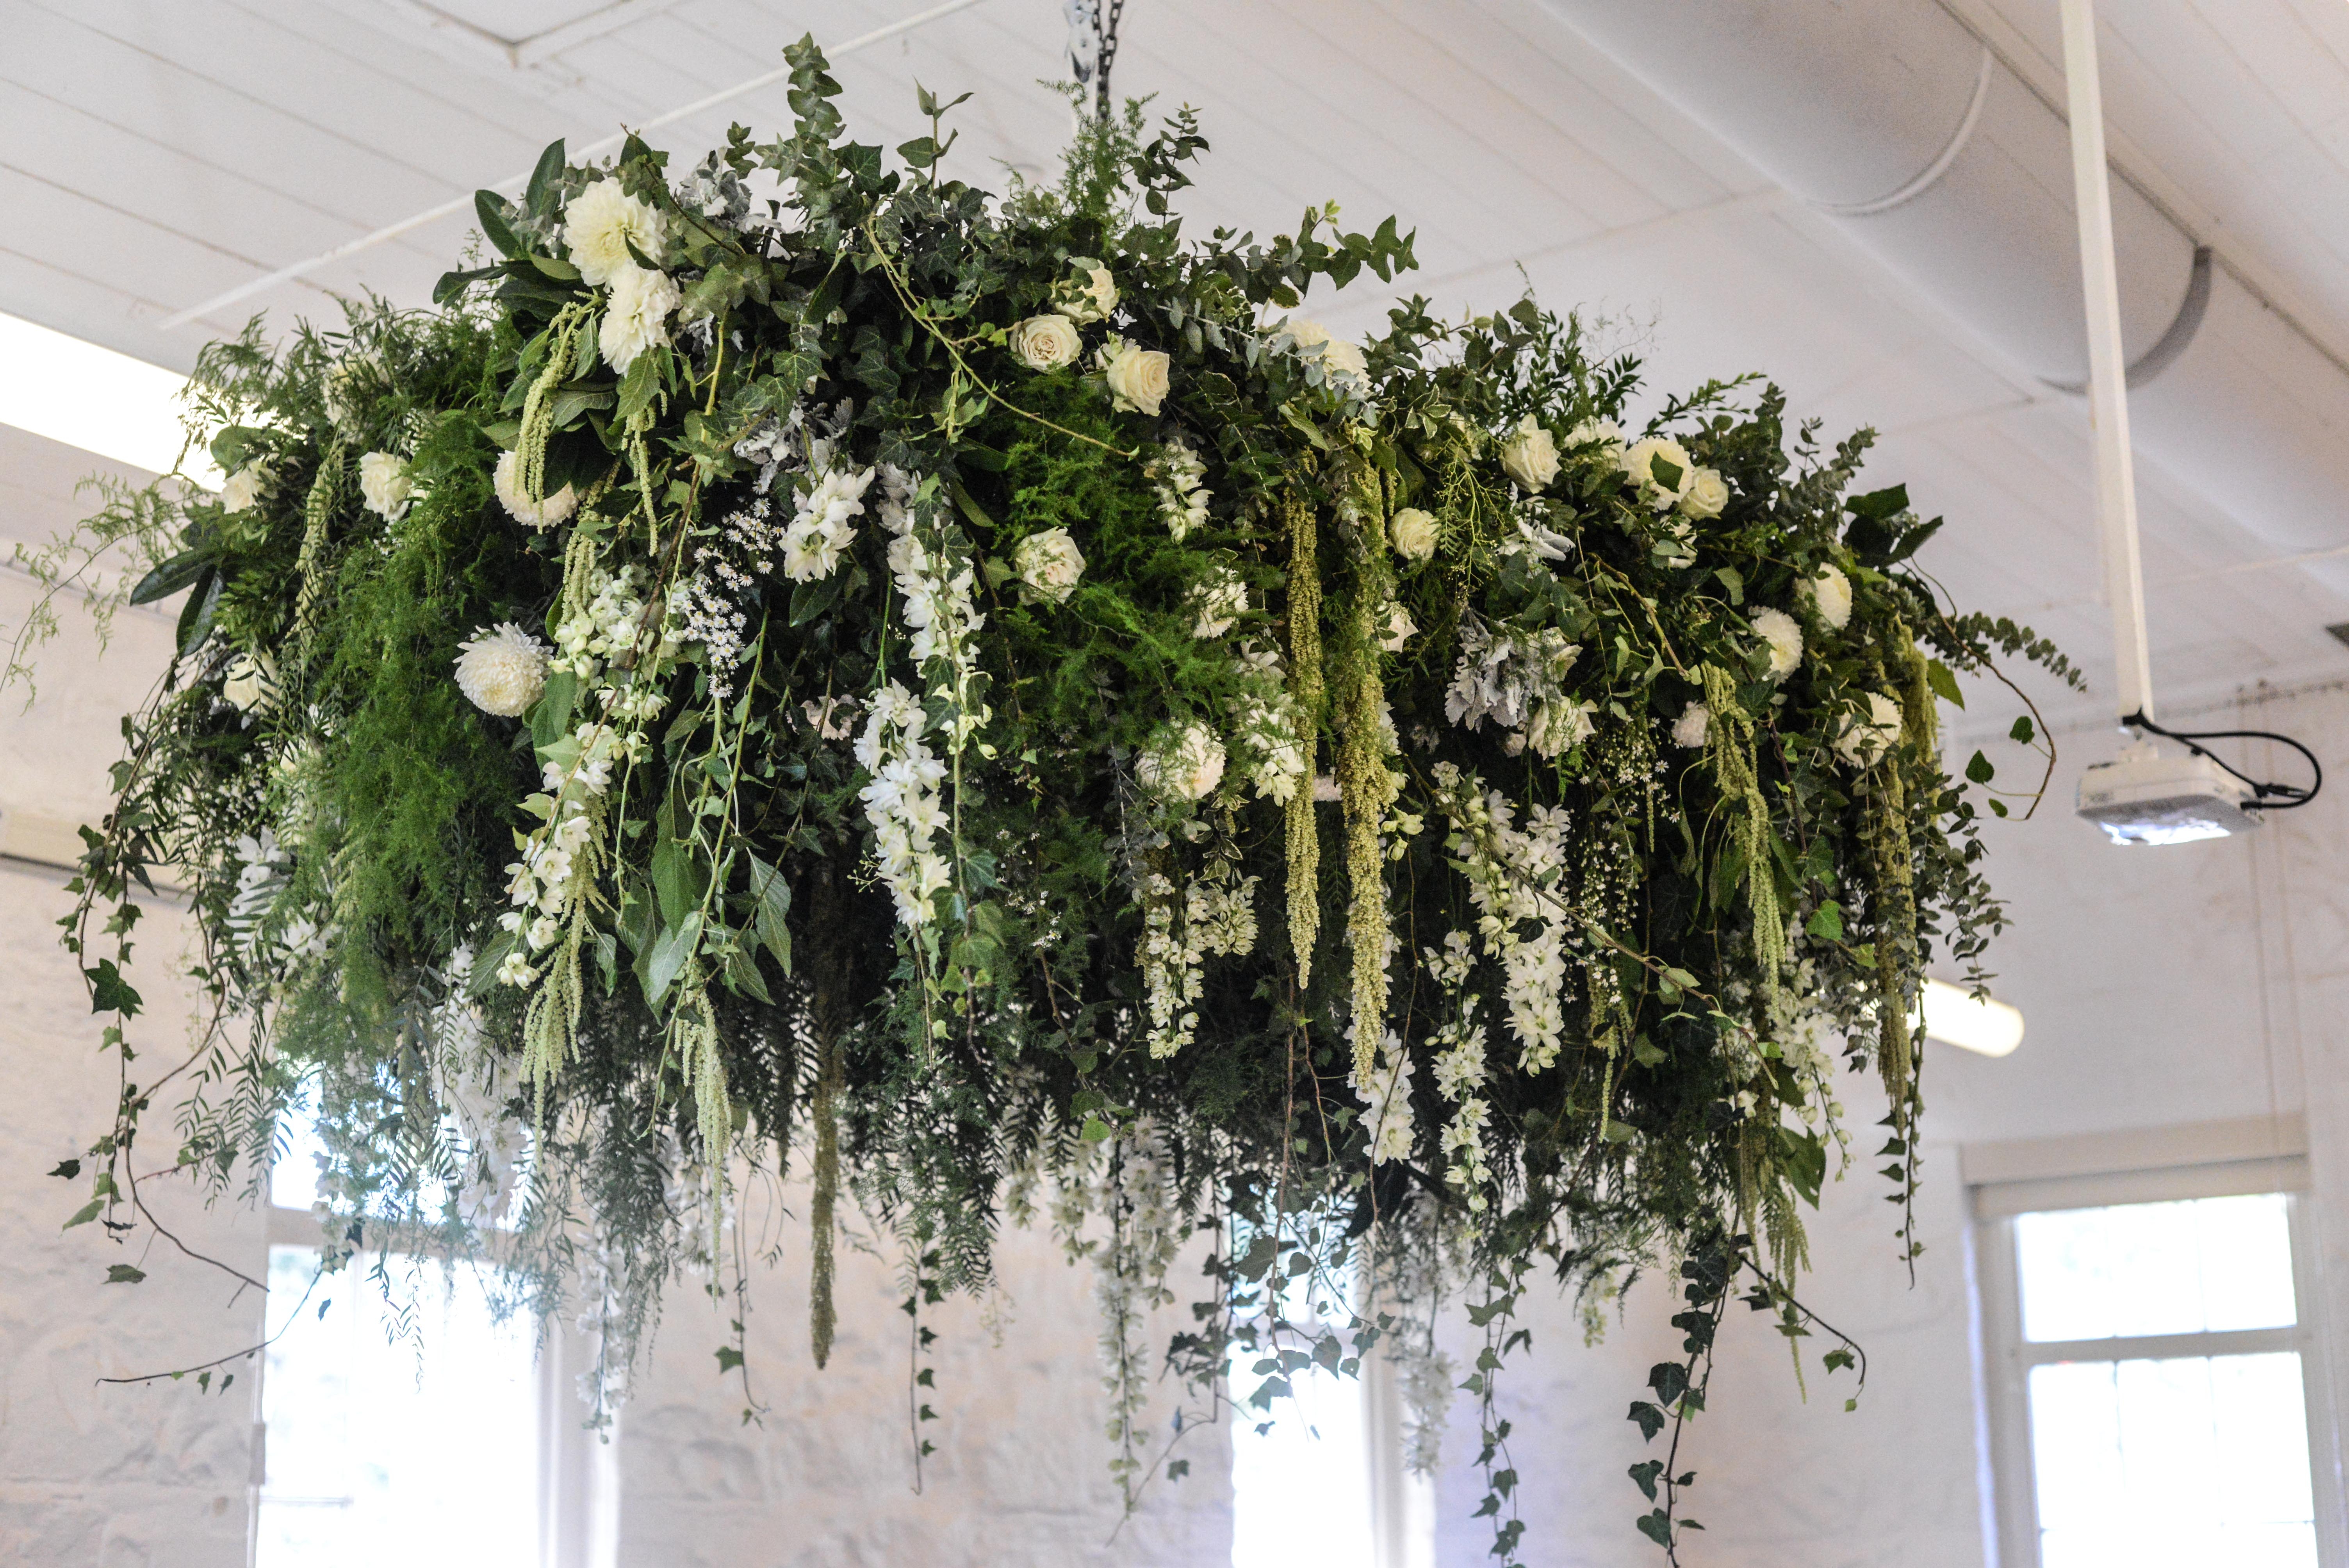 Hanging flowers in creams & white